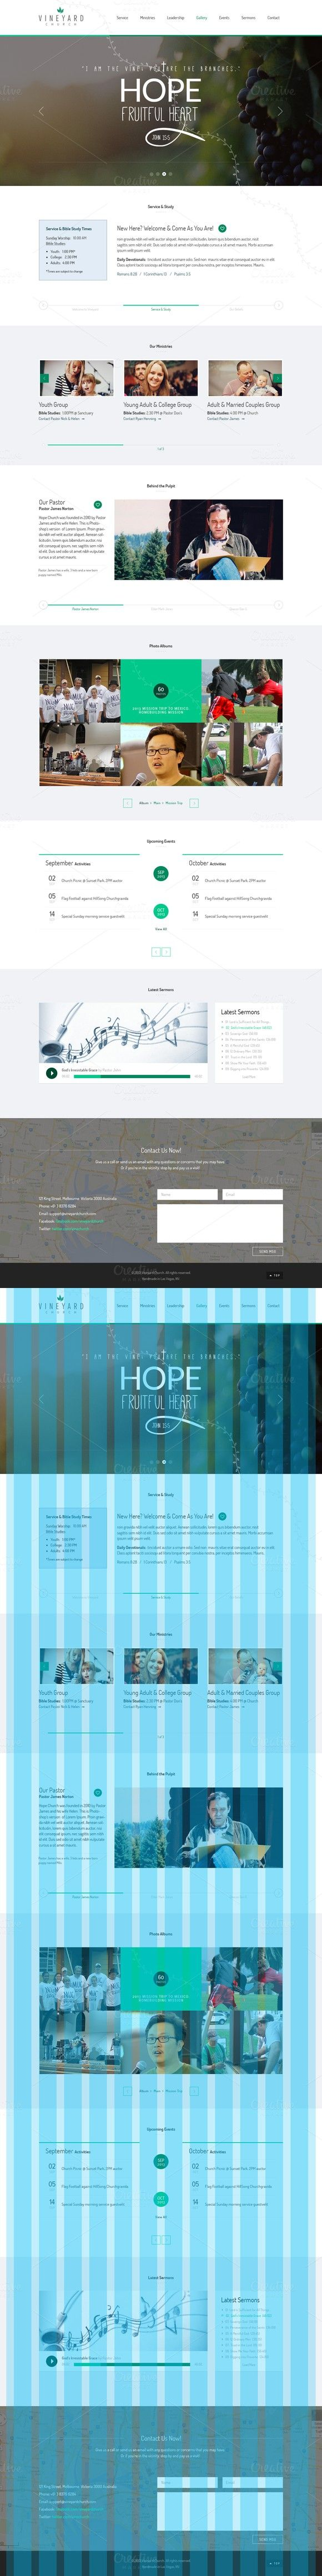 Vineyard Church - One Page Theme. Bootstrap Themes. $24.00